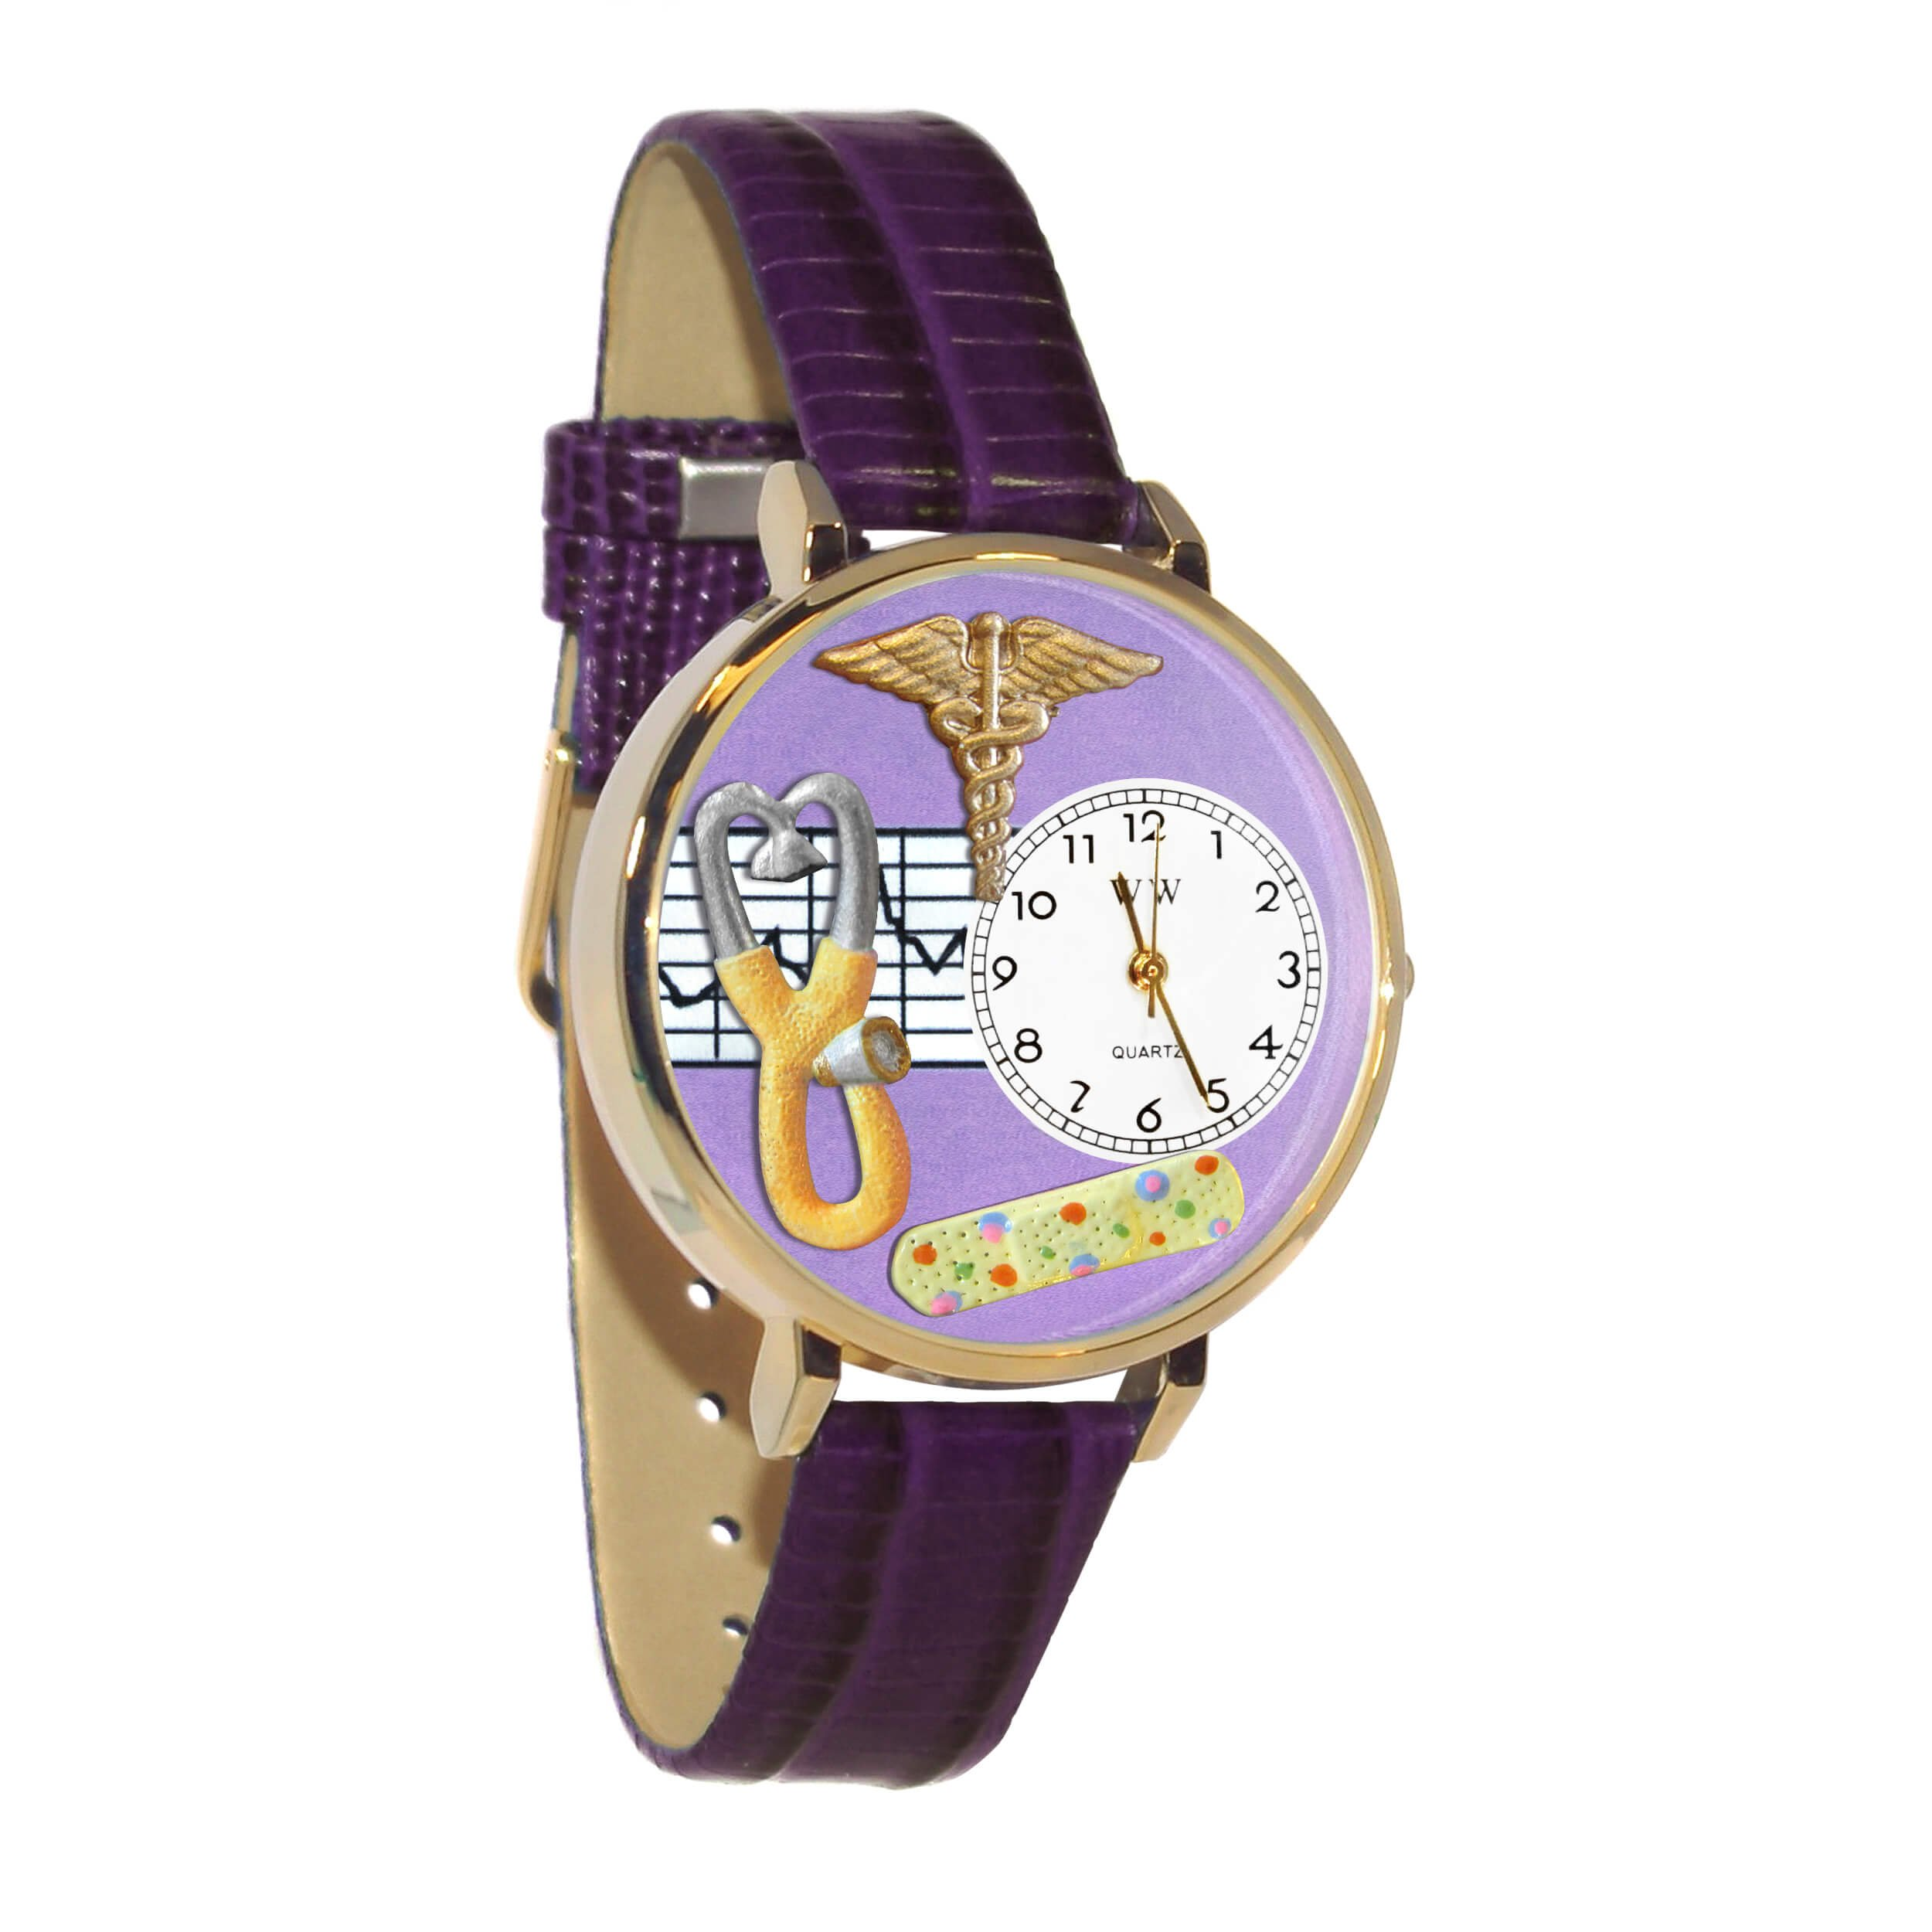 Whimsical Watches Unisex G0620050 Nurse 2 Analog Display Japanese Quartz Purple Watch